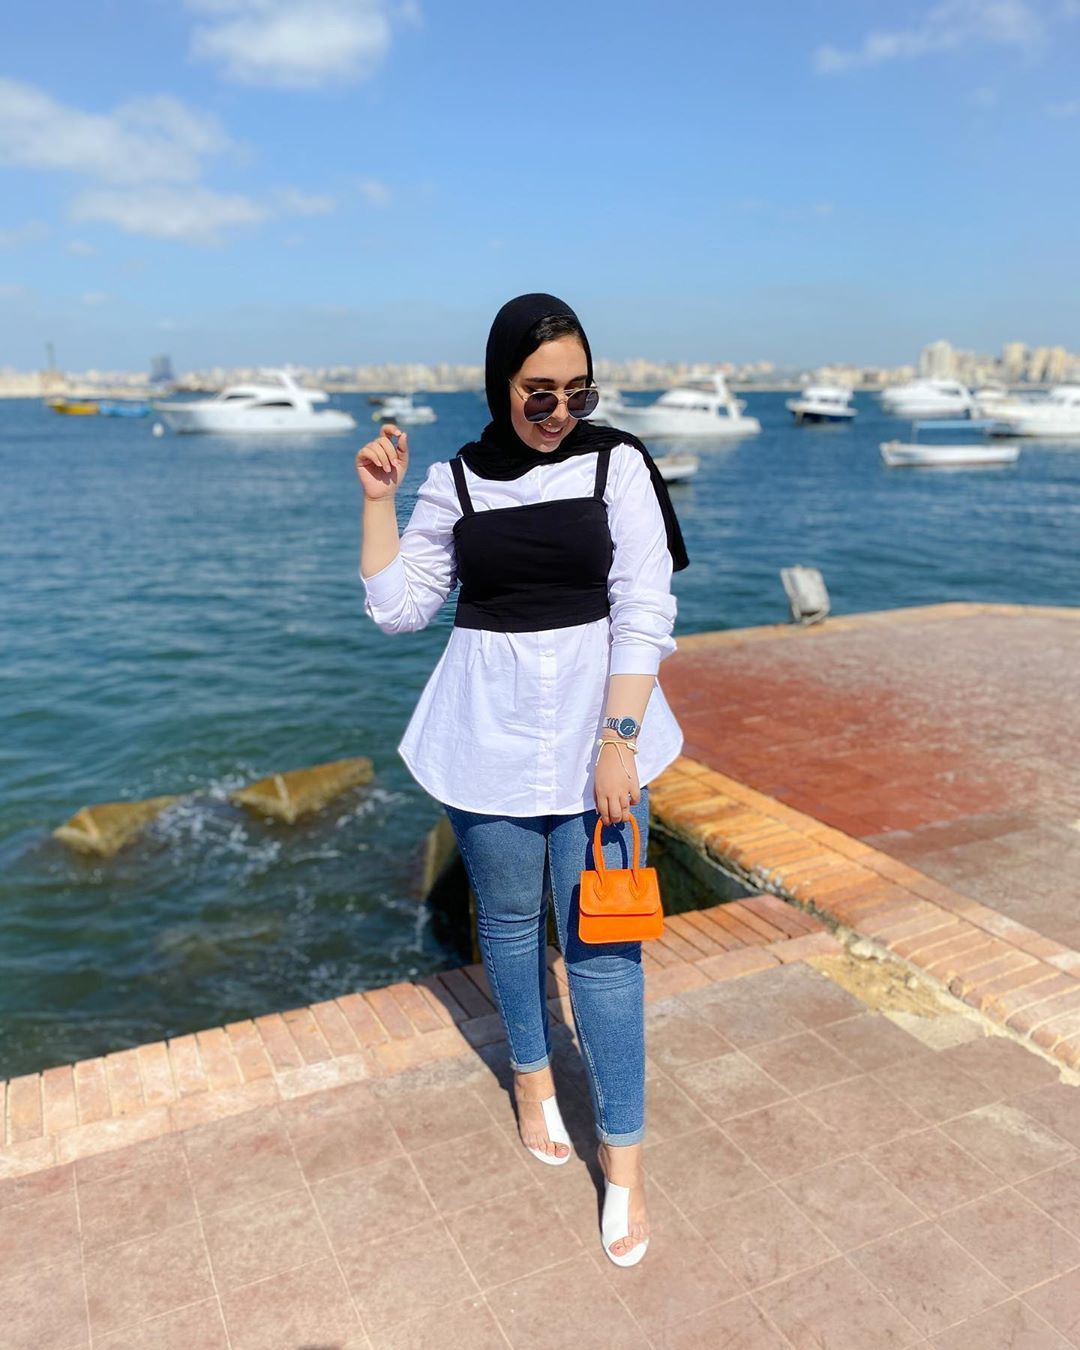 "Photo of 𝓡𝓪𝓷𝓲𝓪 𝓪𝓵𝓪𝓪 ♥︎ on Instagram: ""𝗚 𝗢 𝗢 𝗗  𝗠 𝗢 𝗥 𝗡 𝗜 𝗡 𝗚 🖤🧡🖤 • • • • • #fashion #fashionblogger #blogger #bloggers #hijab  #style #trend #fashionbloggers #fashionblog…"""